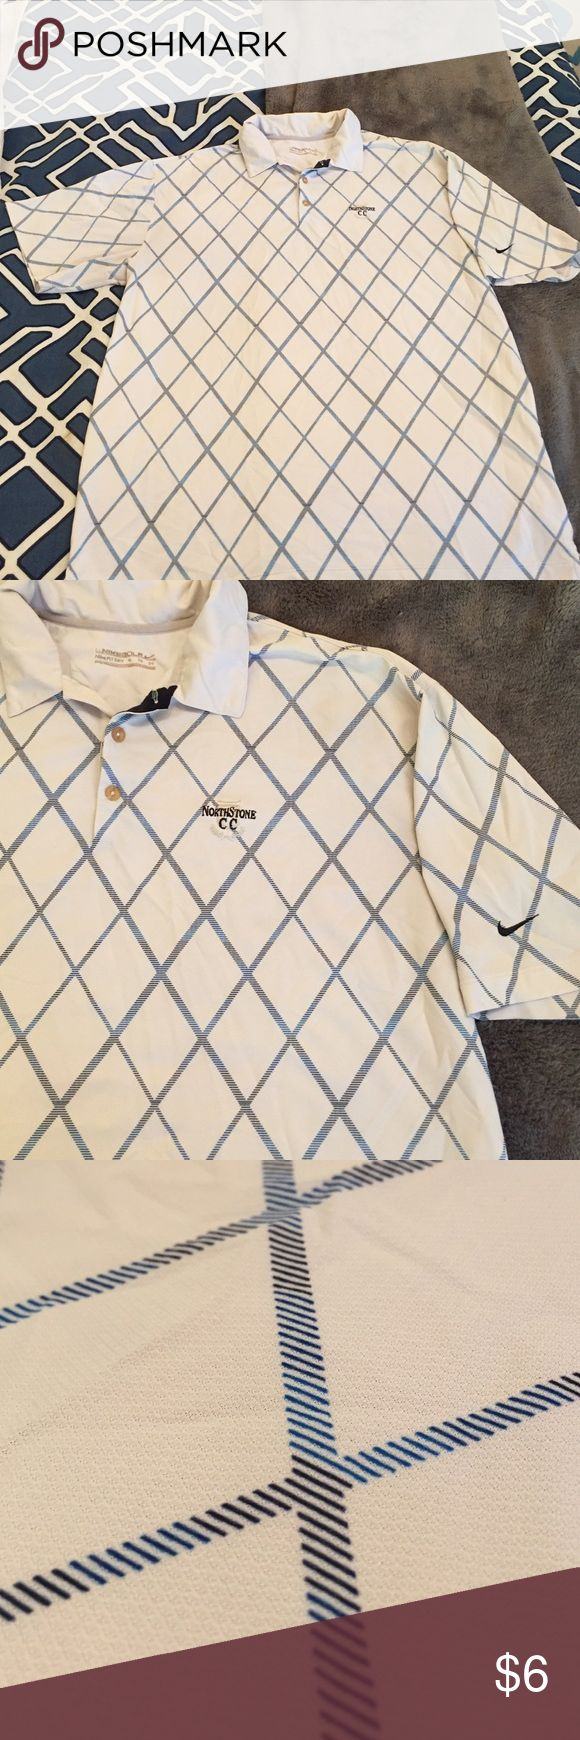 Men's golf polo Used men's Nike golf polo. Appears to be in ok used condition but does have wear to it Nike Shirts Polos